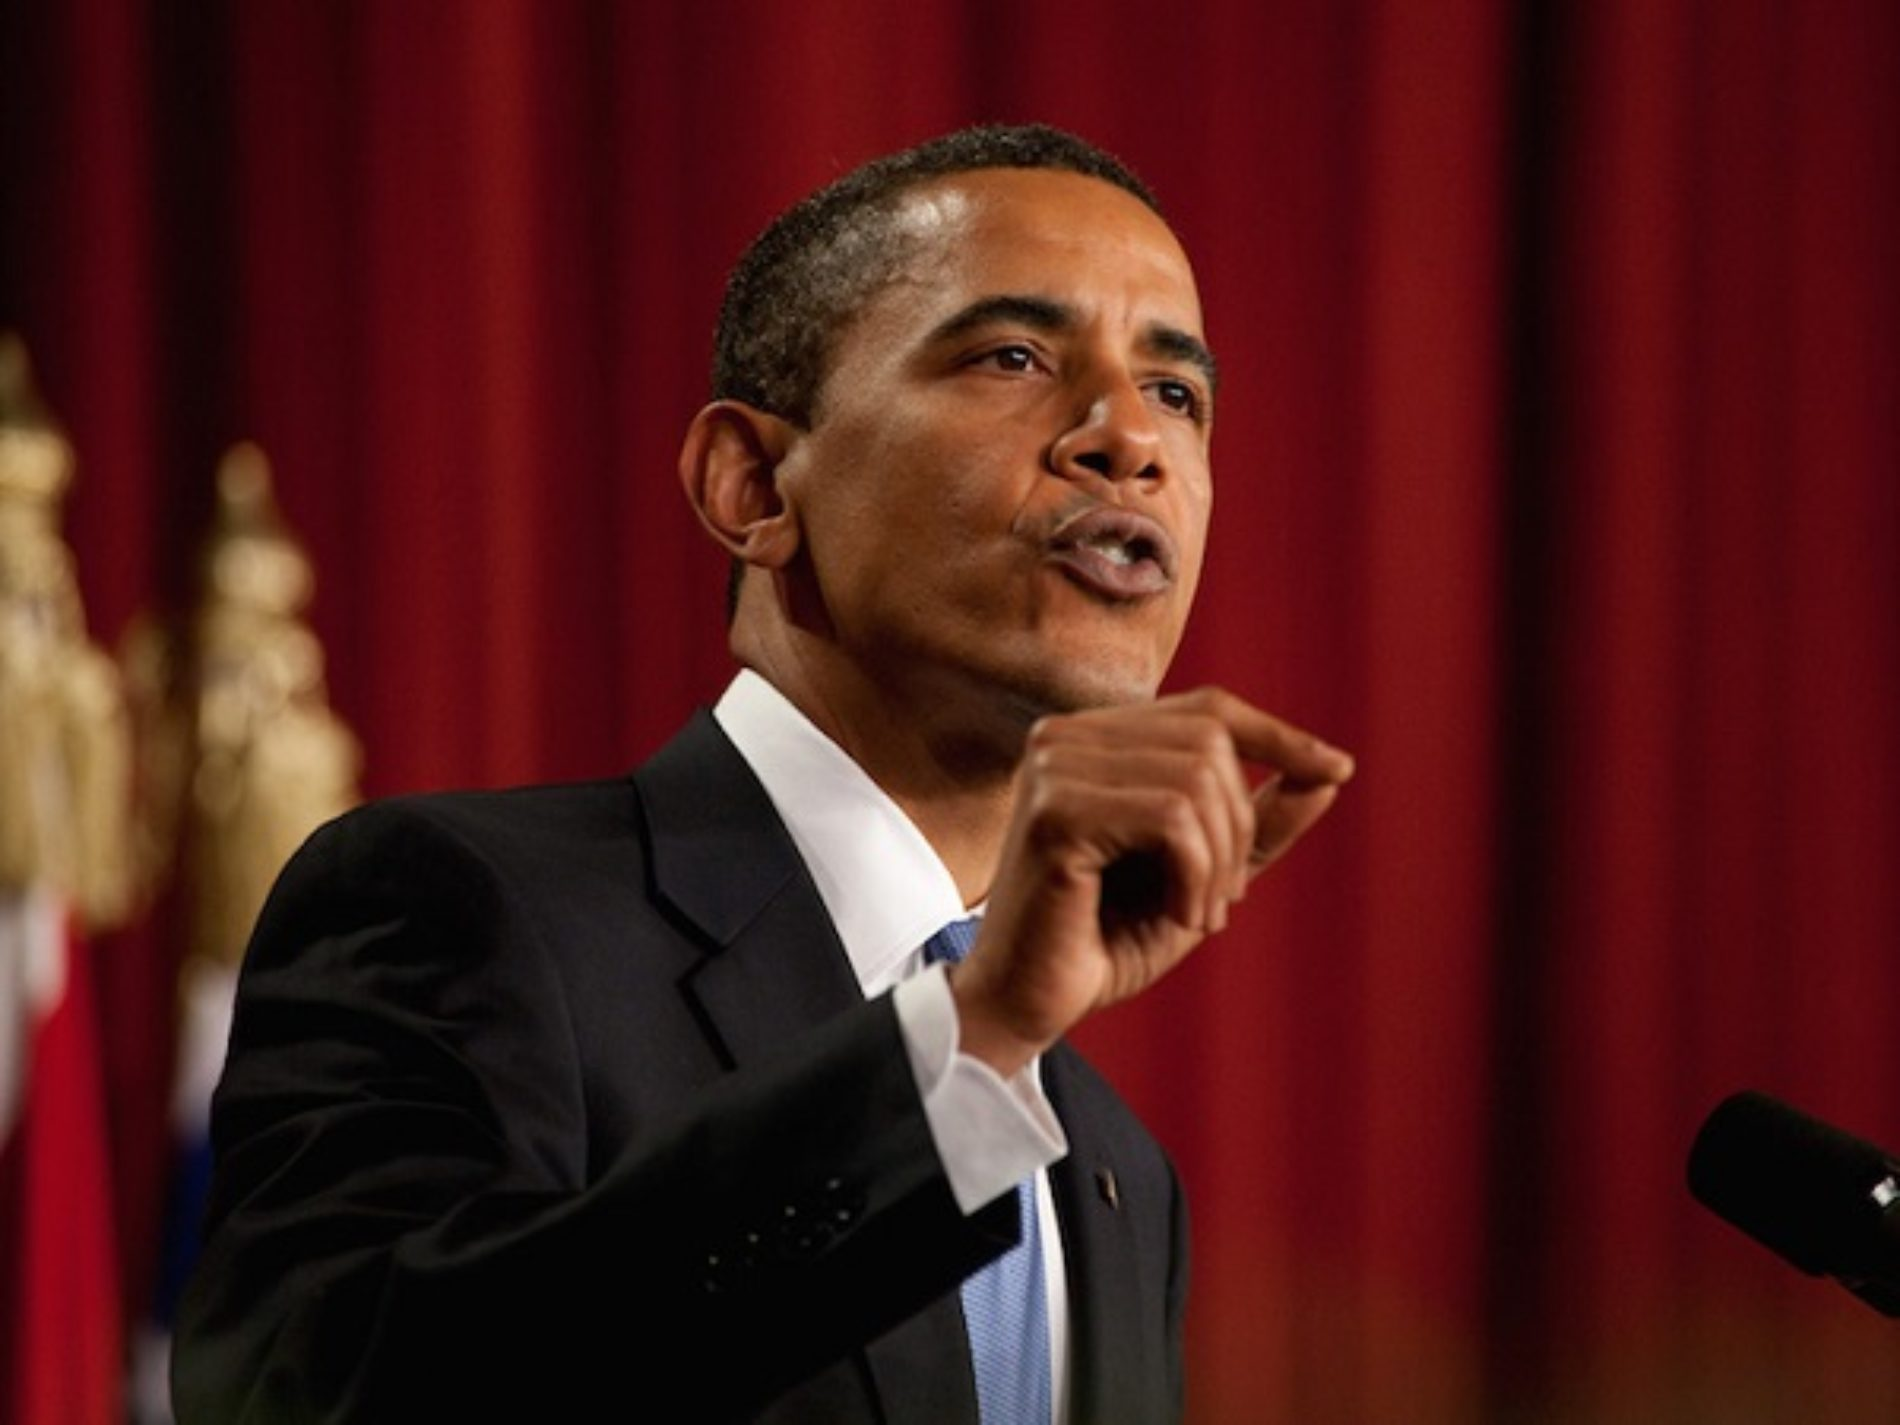 Obama Encourages Young African Leaders to Support LGBT Rights